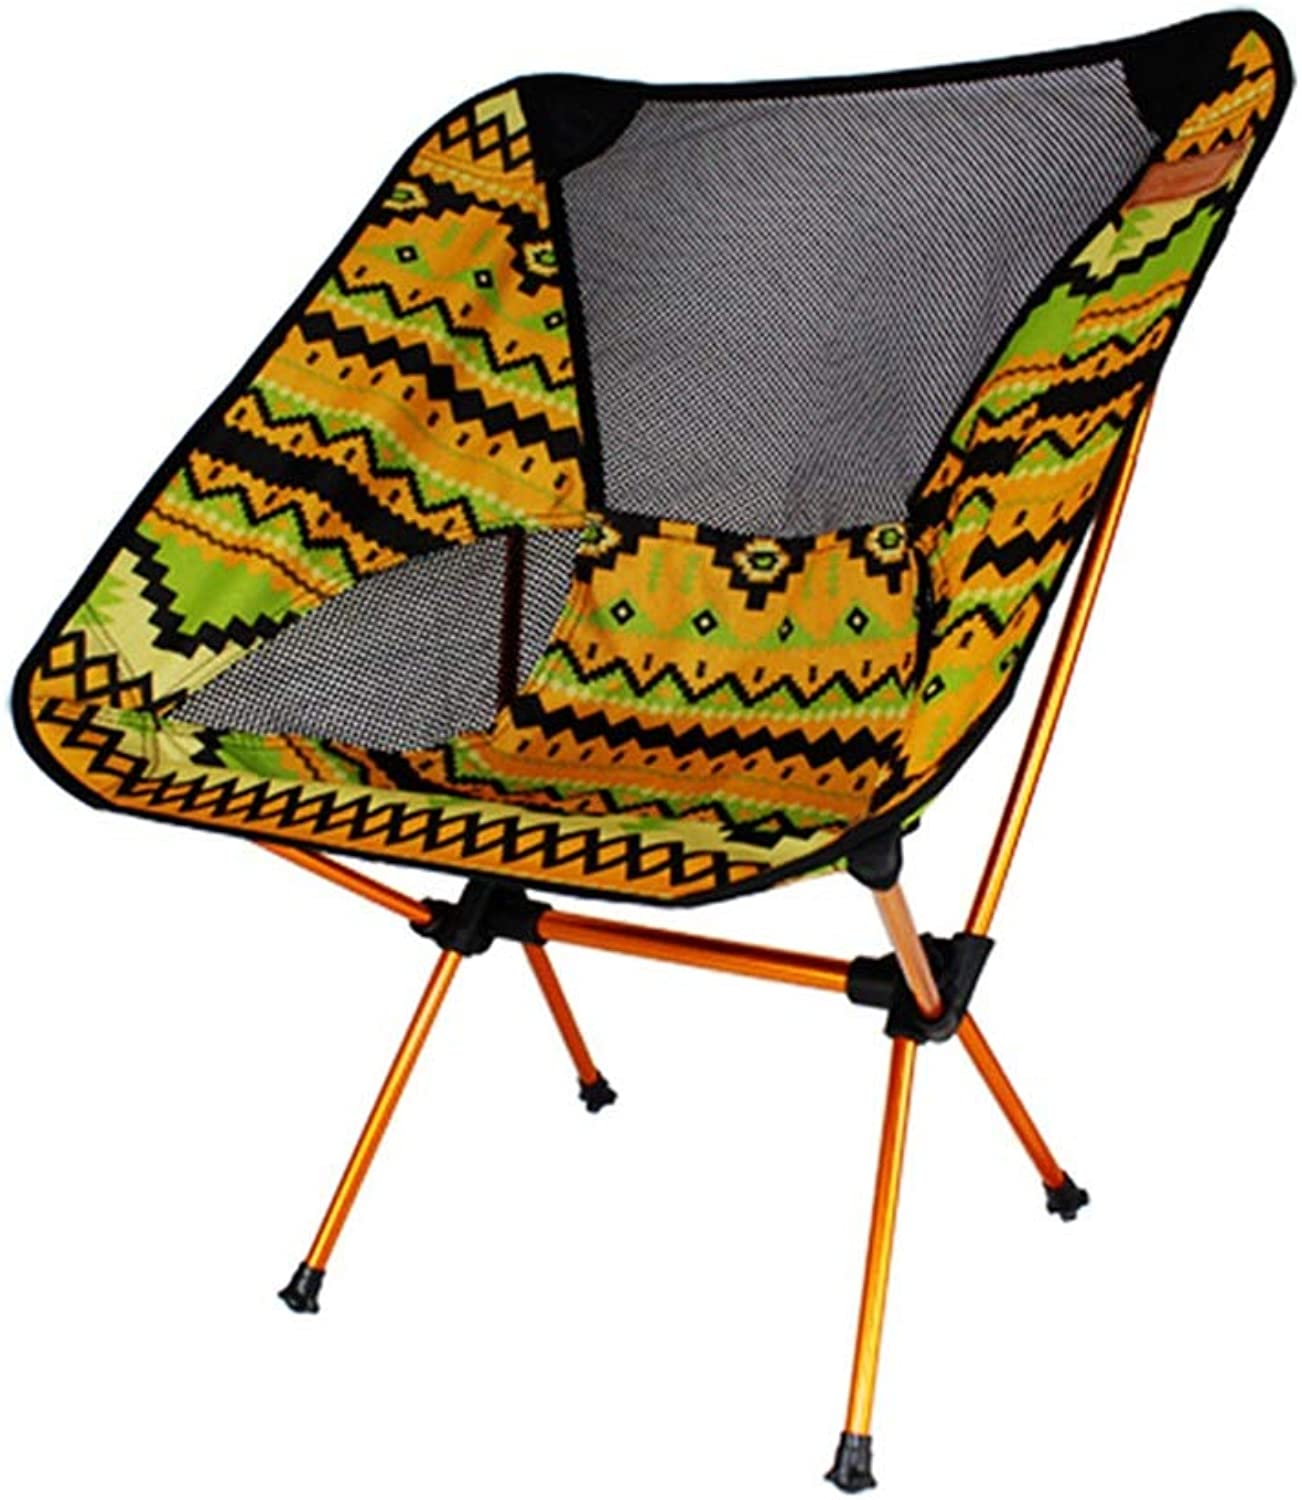 Lounge Chairs Folding Leisure Lounge Chair Zero Gravity Portable Moon Chair Beach Camping Fishing, Bearing 100kg